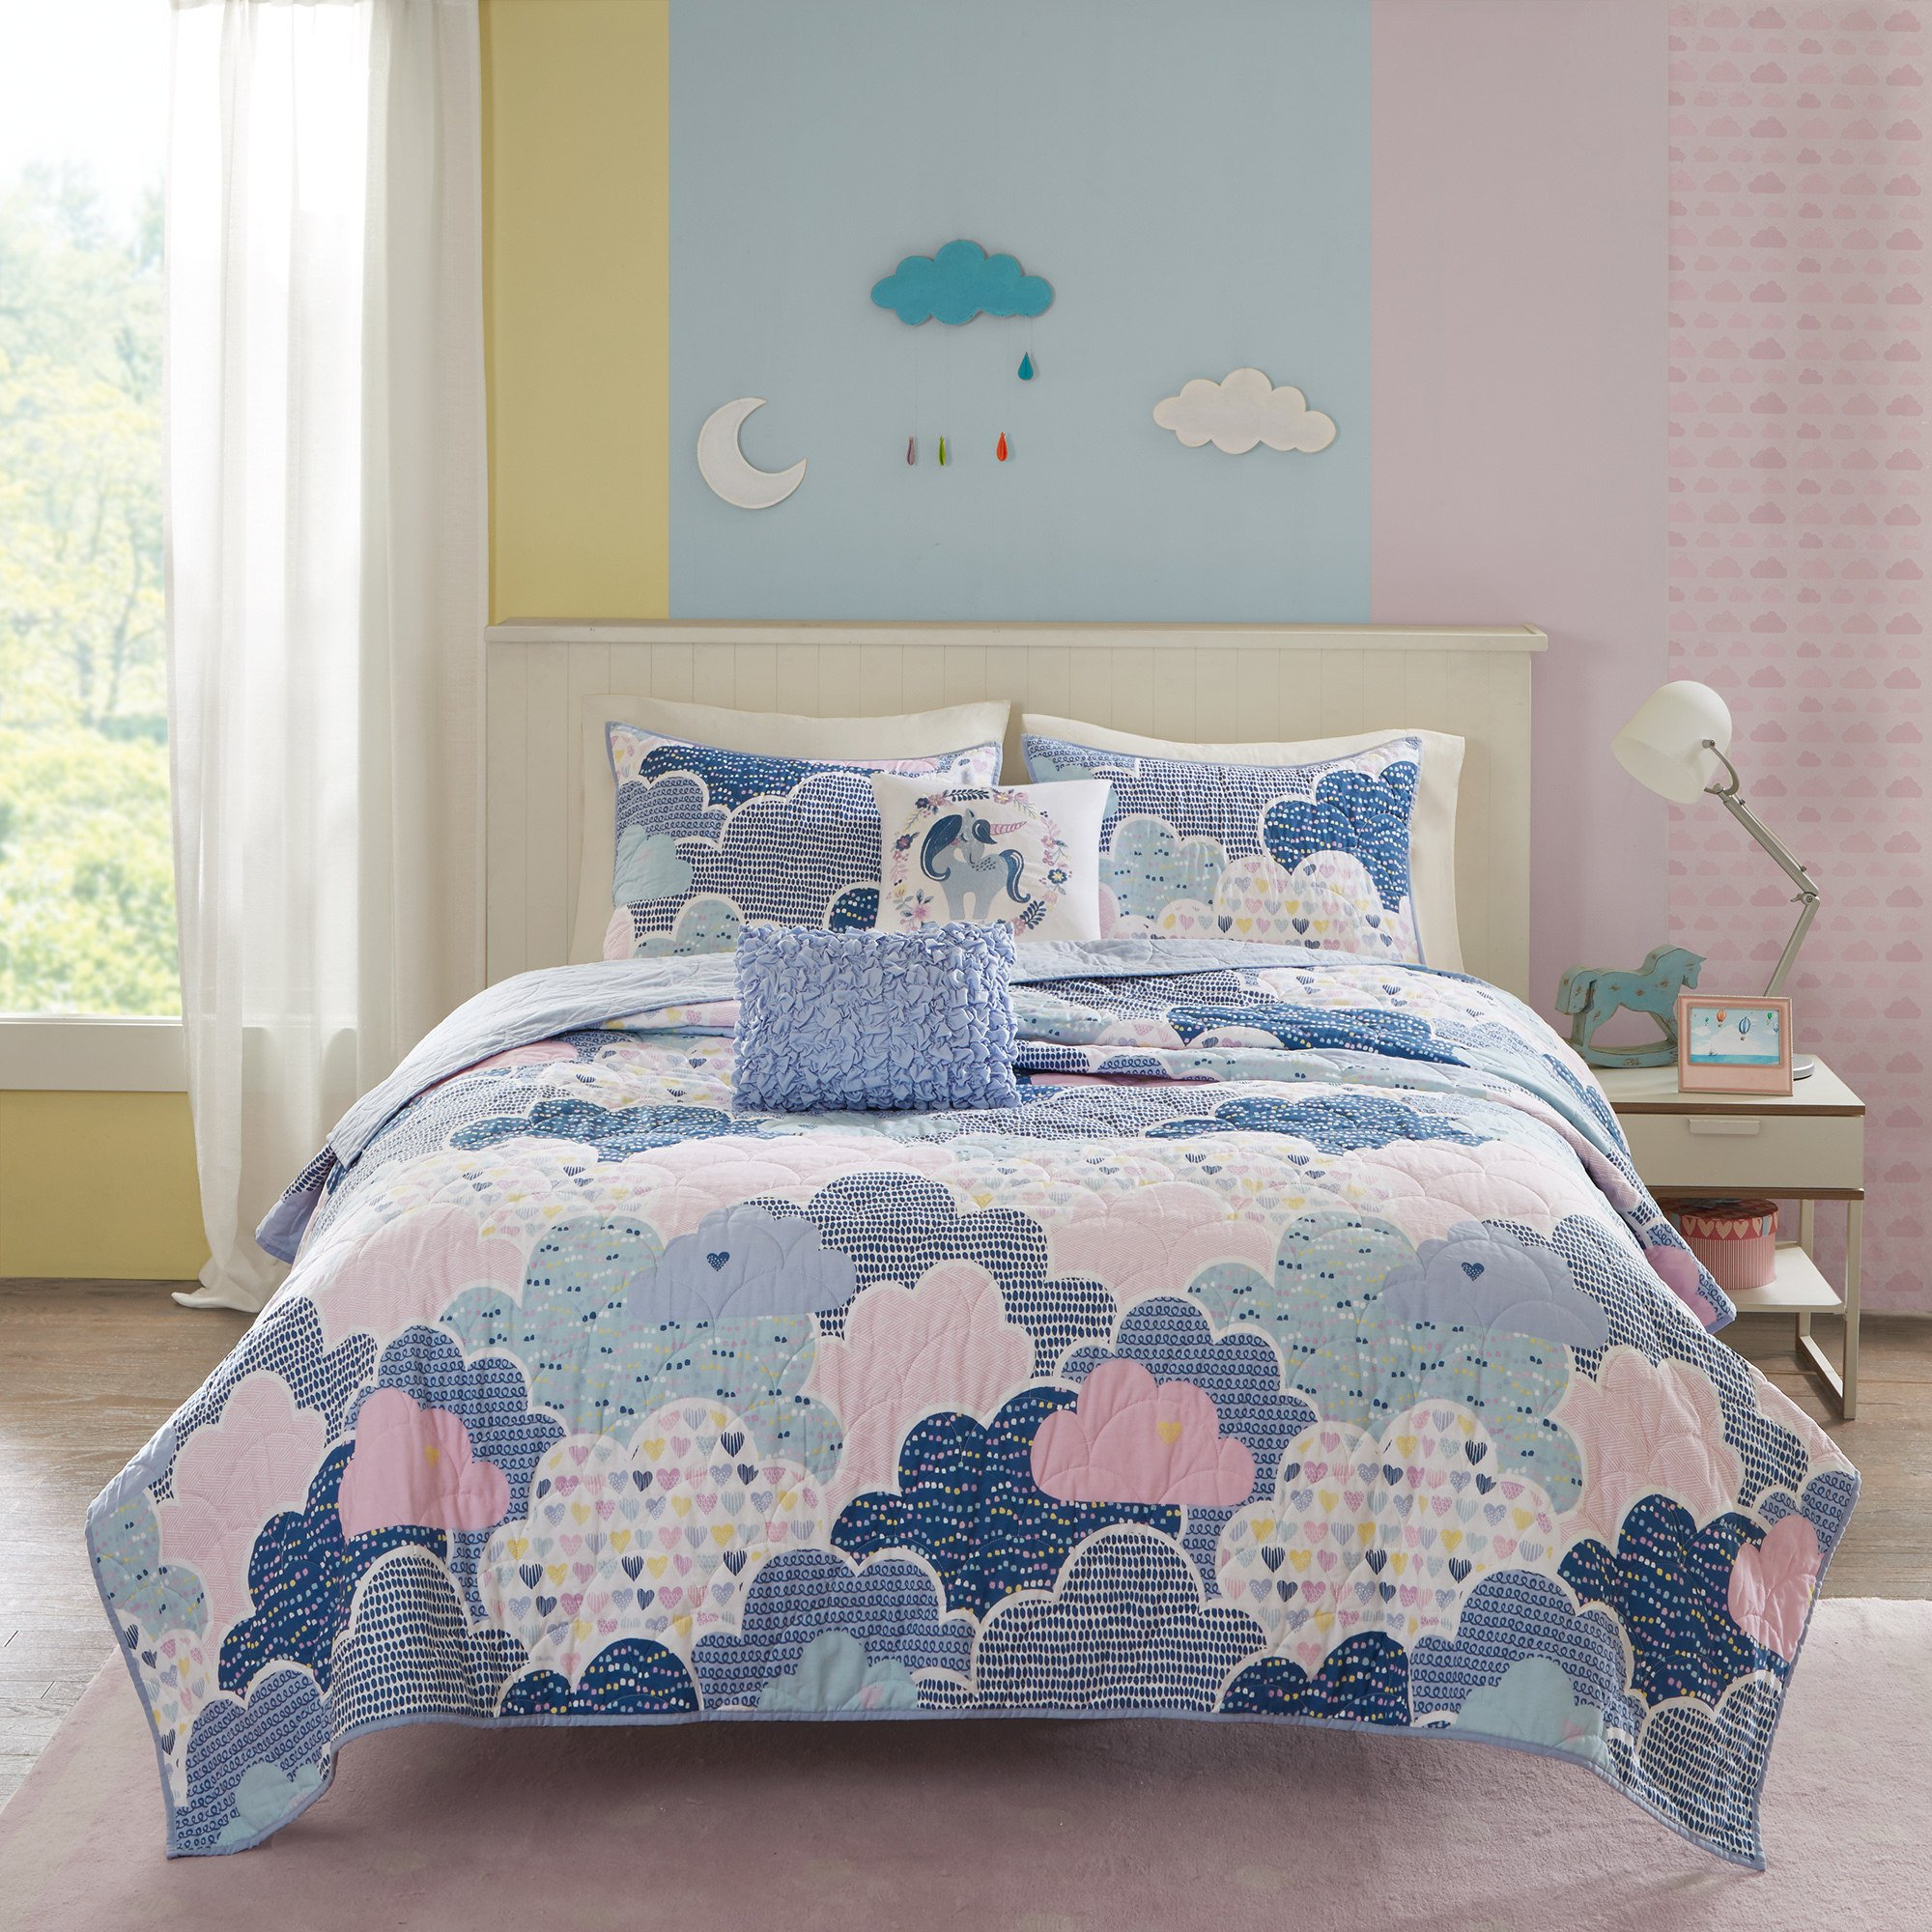 5 Piece Girls Blue Pink Purple White Color Cloud Themed Coverlet Full Queen Set, Sky Clouds Bedding, Playful Fun Polka Dot Heart Love Swirl Dots Pattern, Cotton by ON (Image #1)